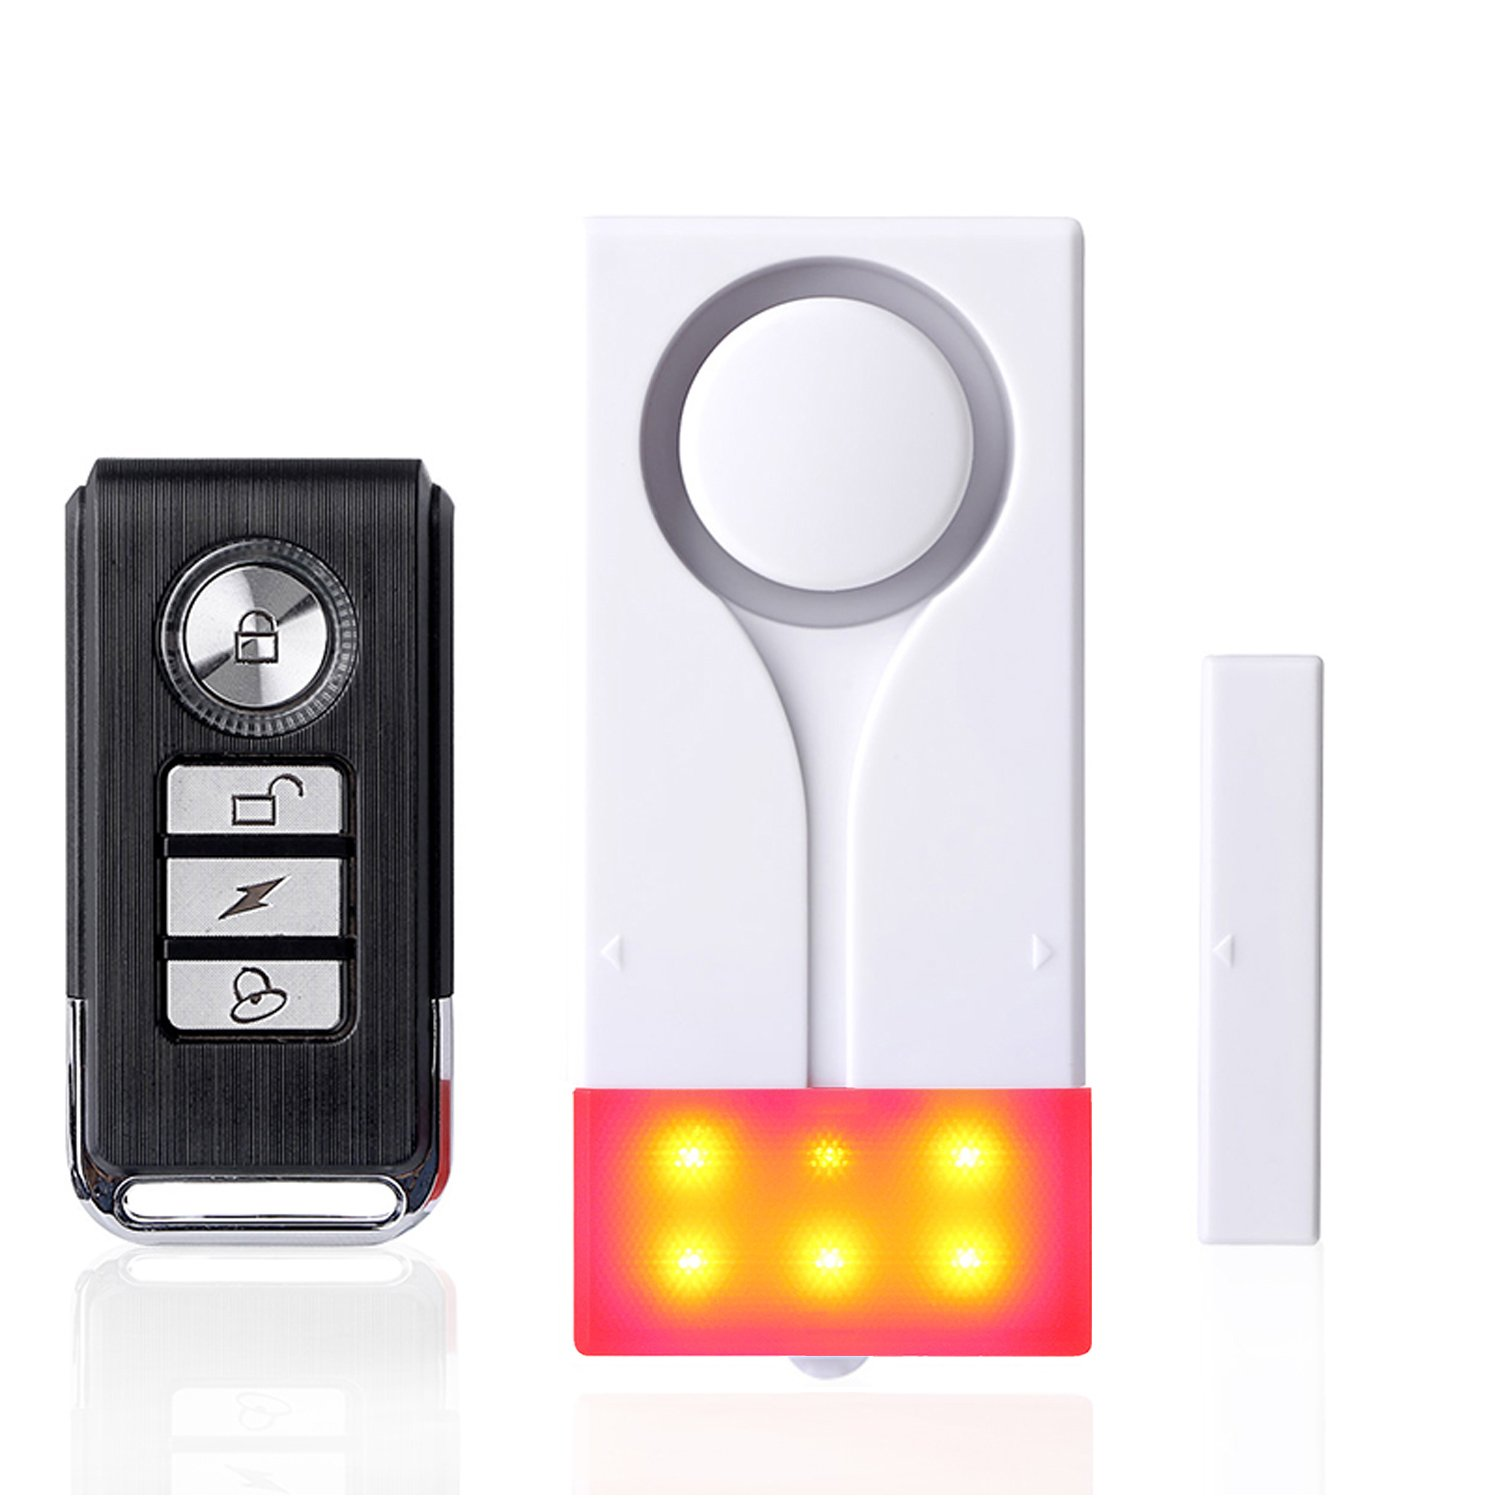 Keye Remote Control Light Sound Wireless Magnetic Home Alarm Wiring Diagram On Simple Door Or Shed Schematic Electronics